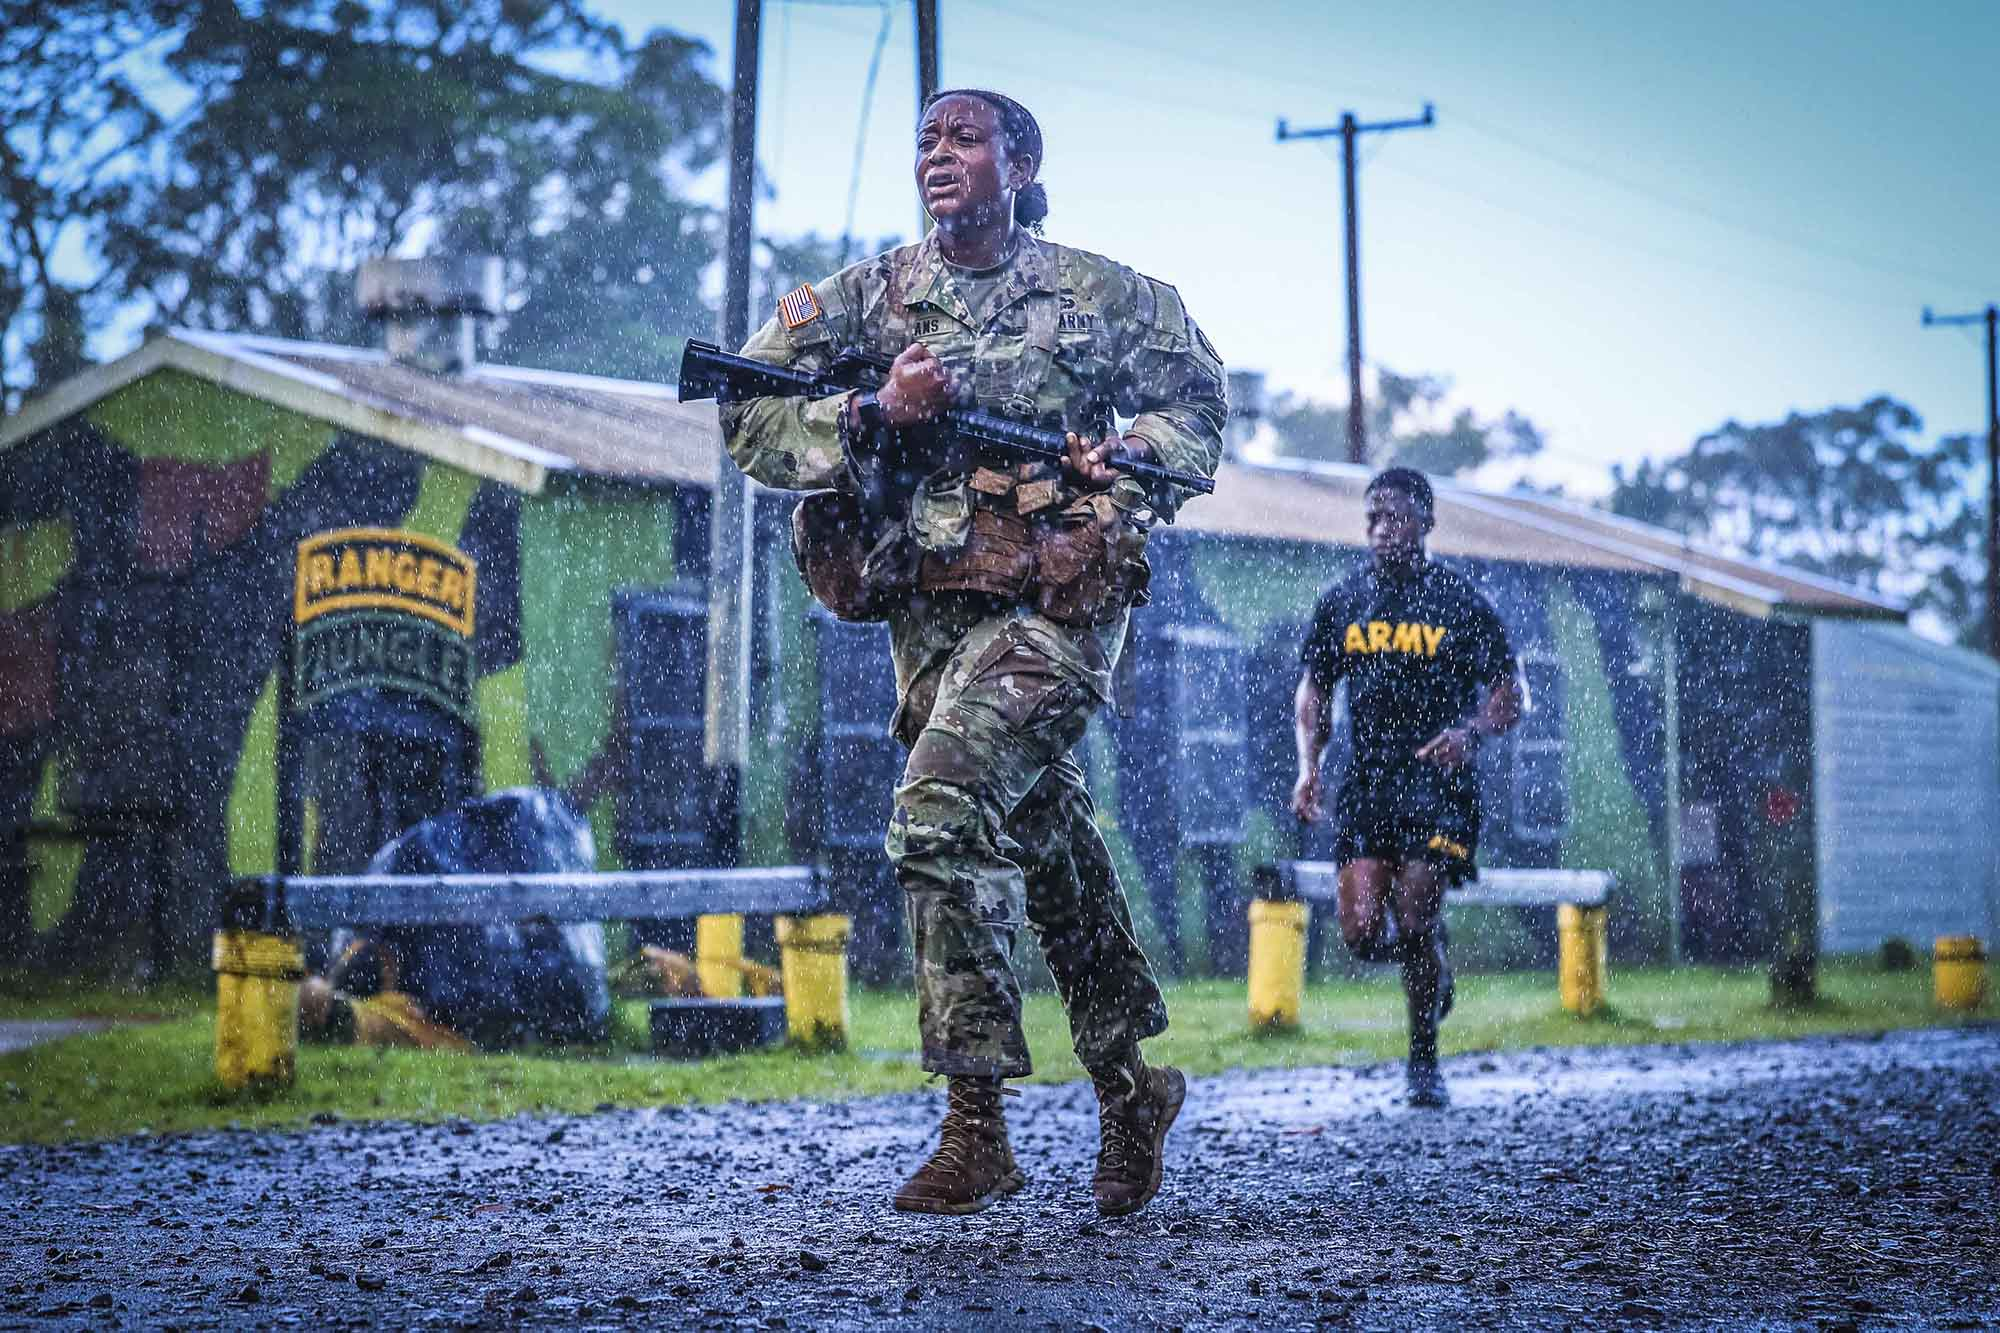 Soldiers from 25th Infantry Division Artillery completed the Jungle 5K and swim test train up at Lightning Academy Schofield Barracks, Hawaii, May 14, 2021, as practice for an upcoming Jungle Operations Training Course. (Spc. Jessica Scott/Army)